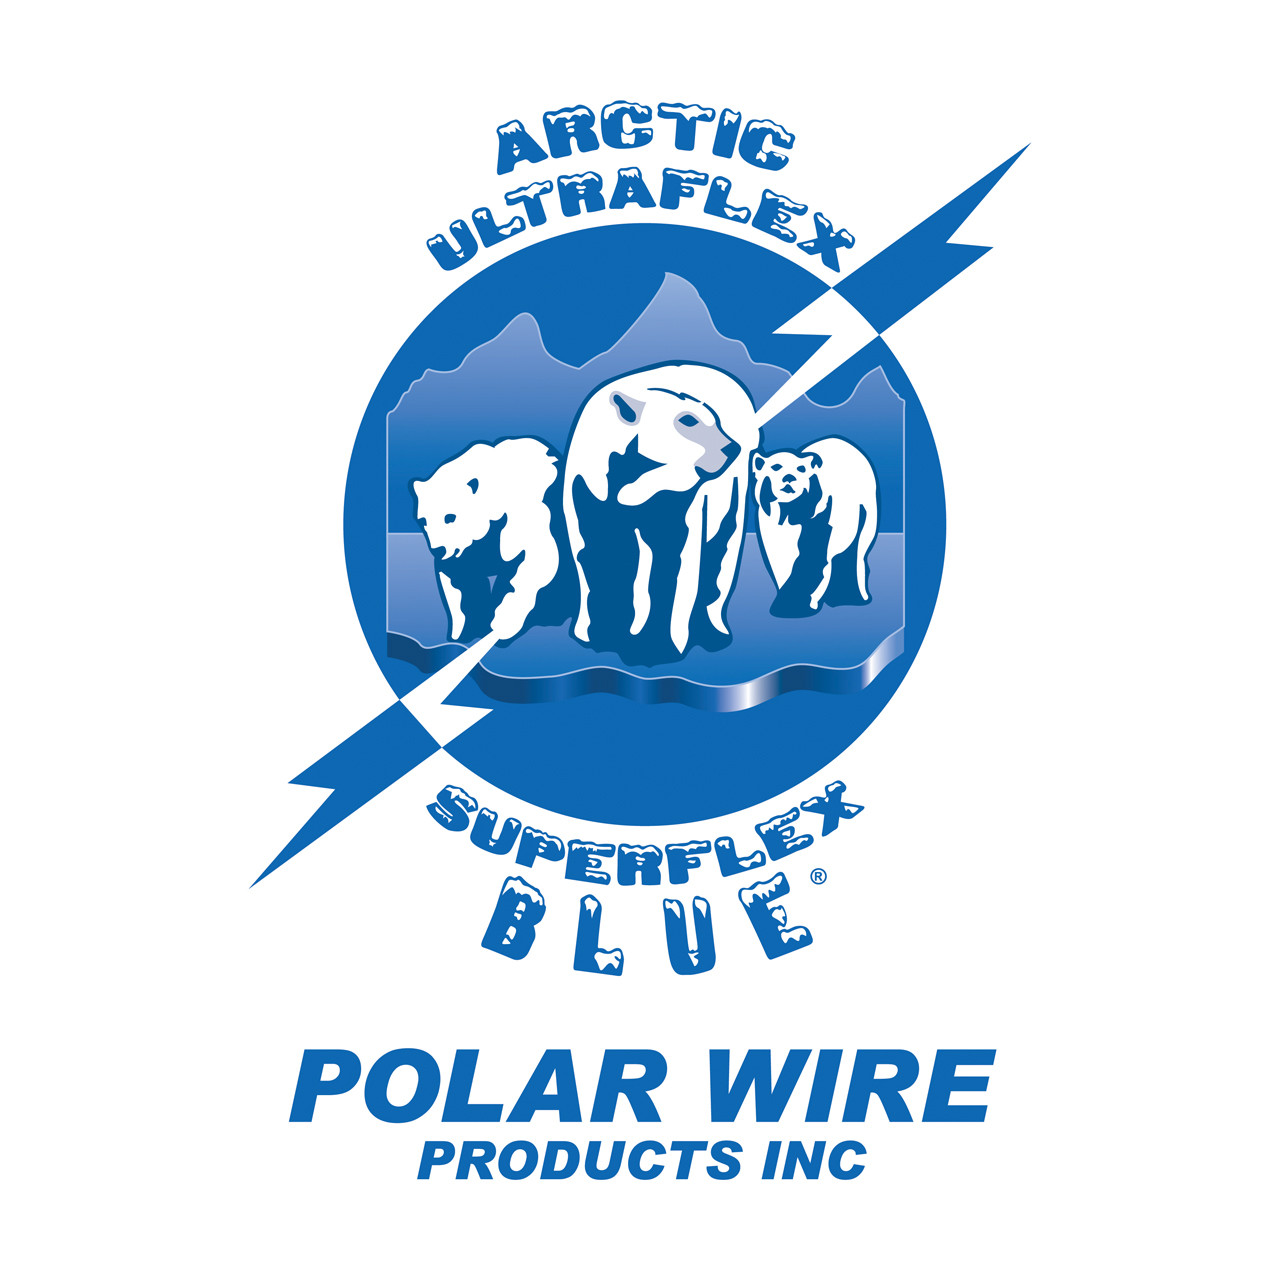 Arctic Ultraflex Blue® and Arctic Superflex Blue® 100% copper Class K fine stranded cold weather flexible wire and cable is manufactured exclusively by Polar Wire Products. Made in the USA